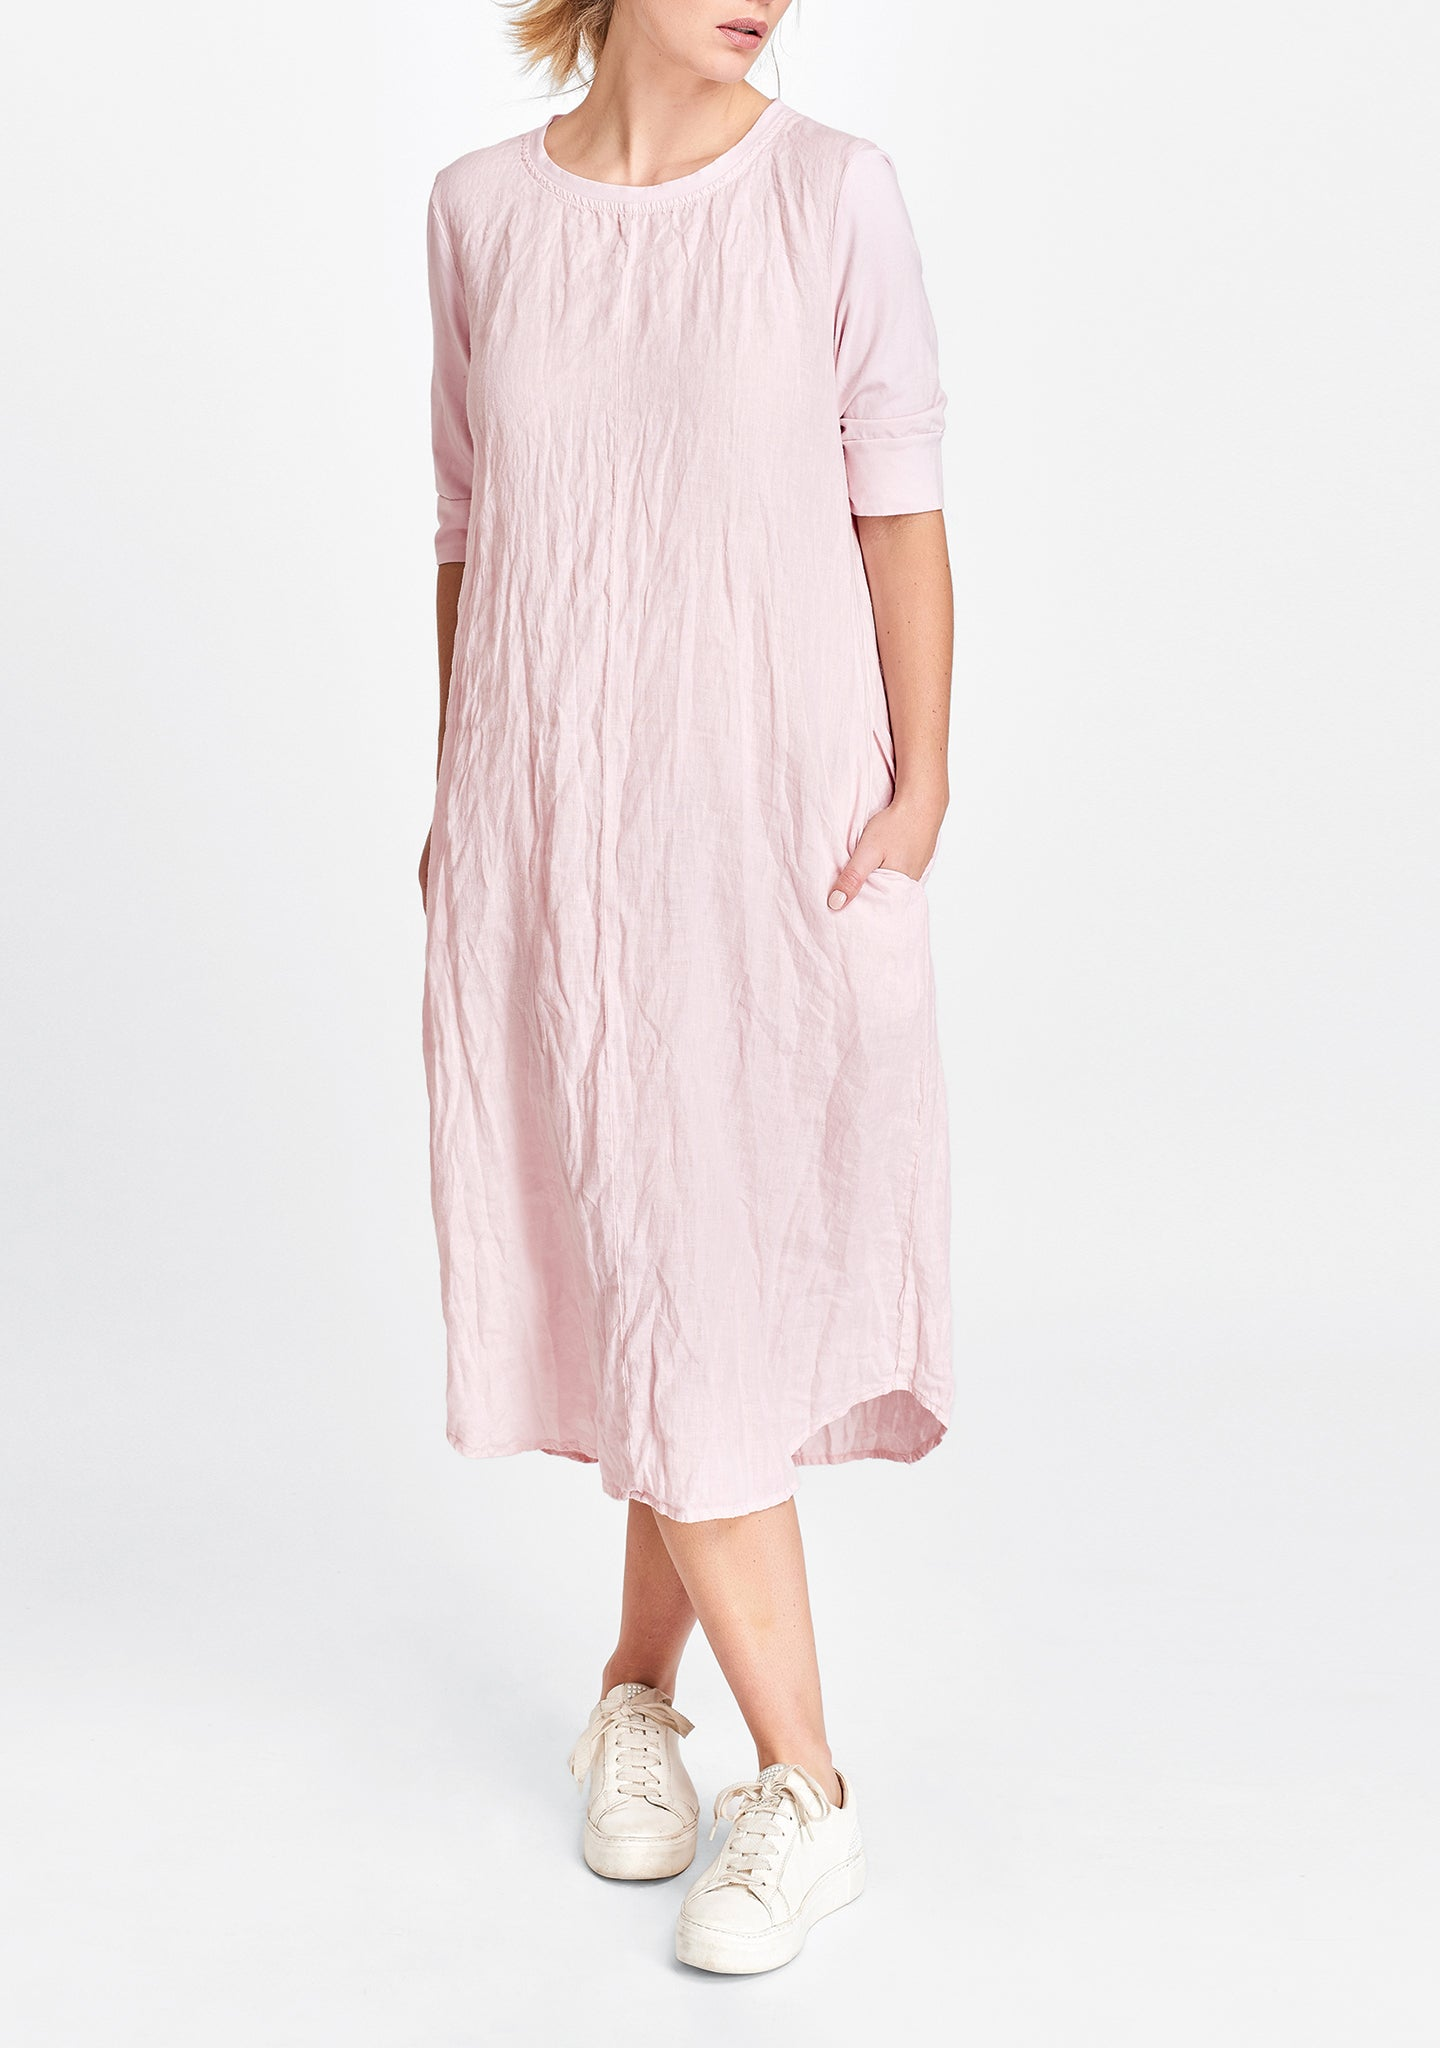 horizon dress pink